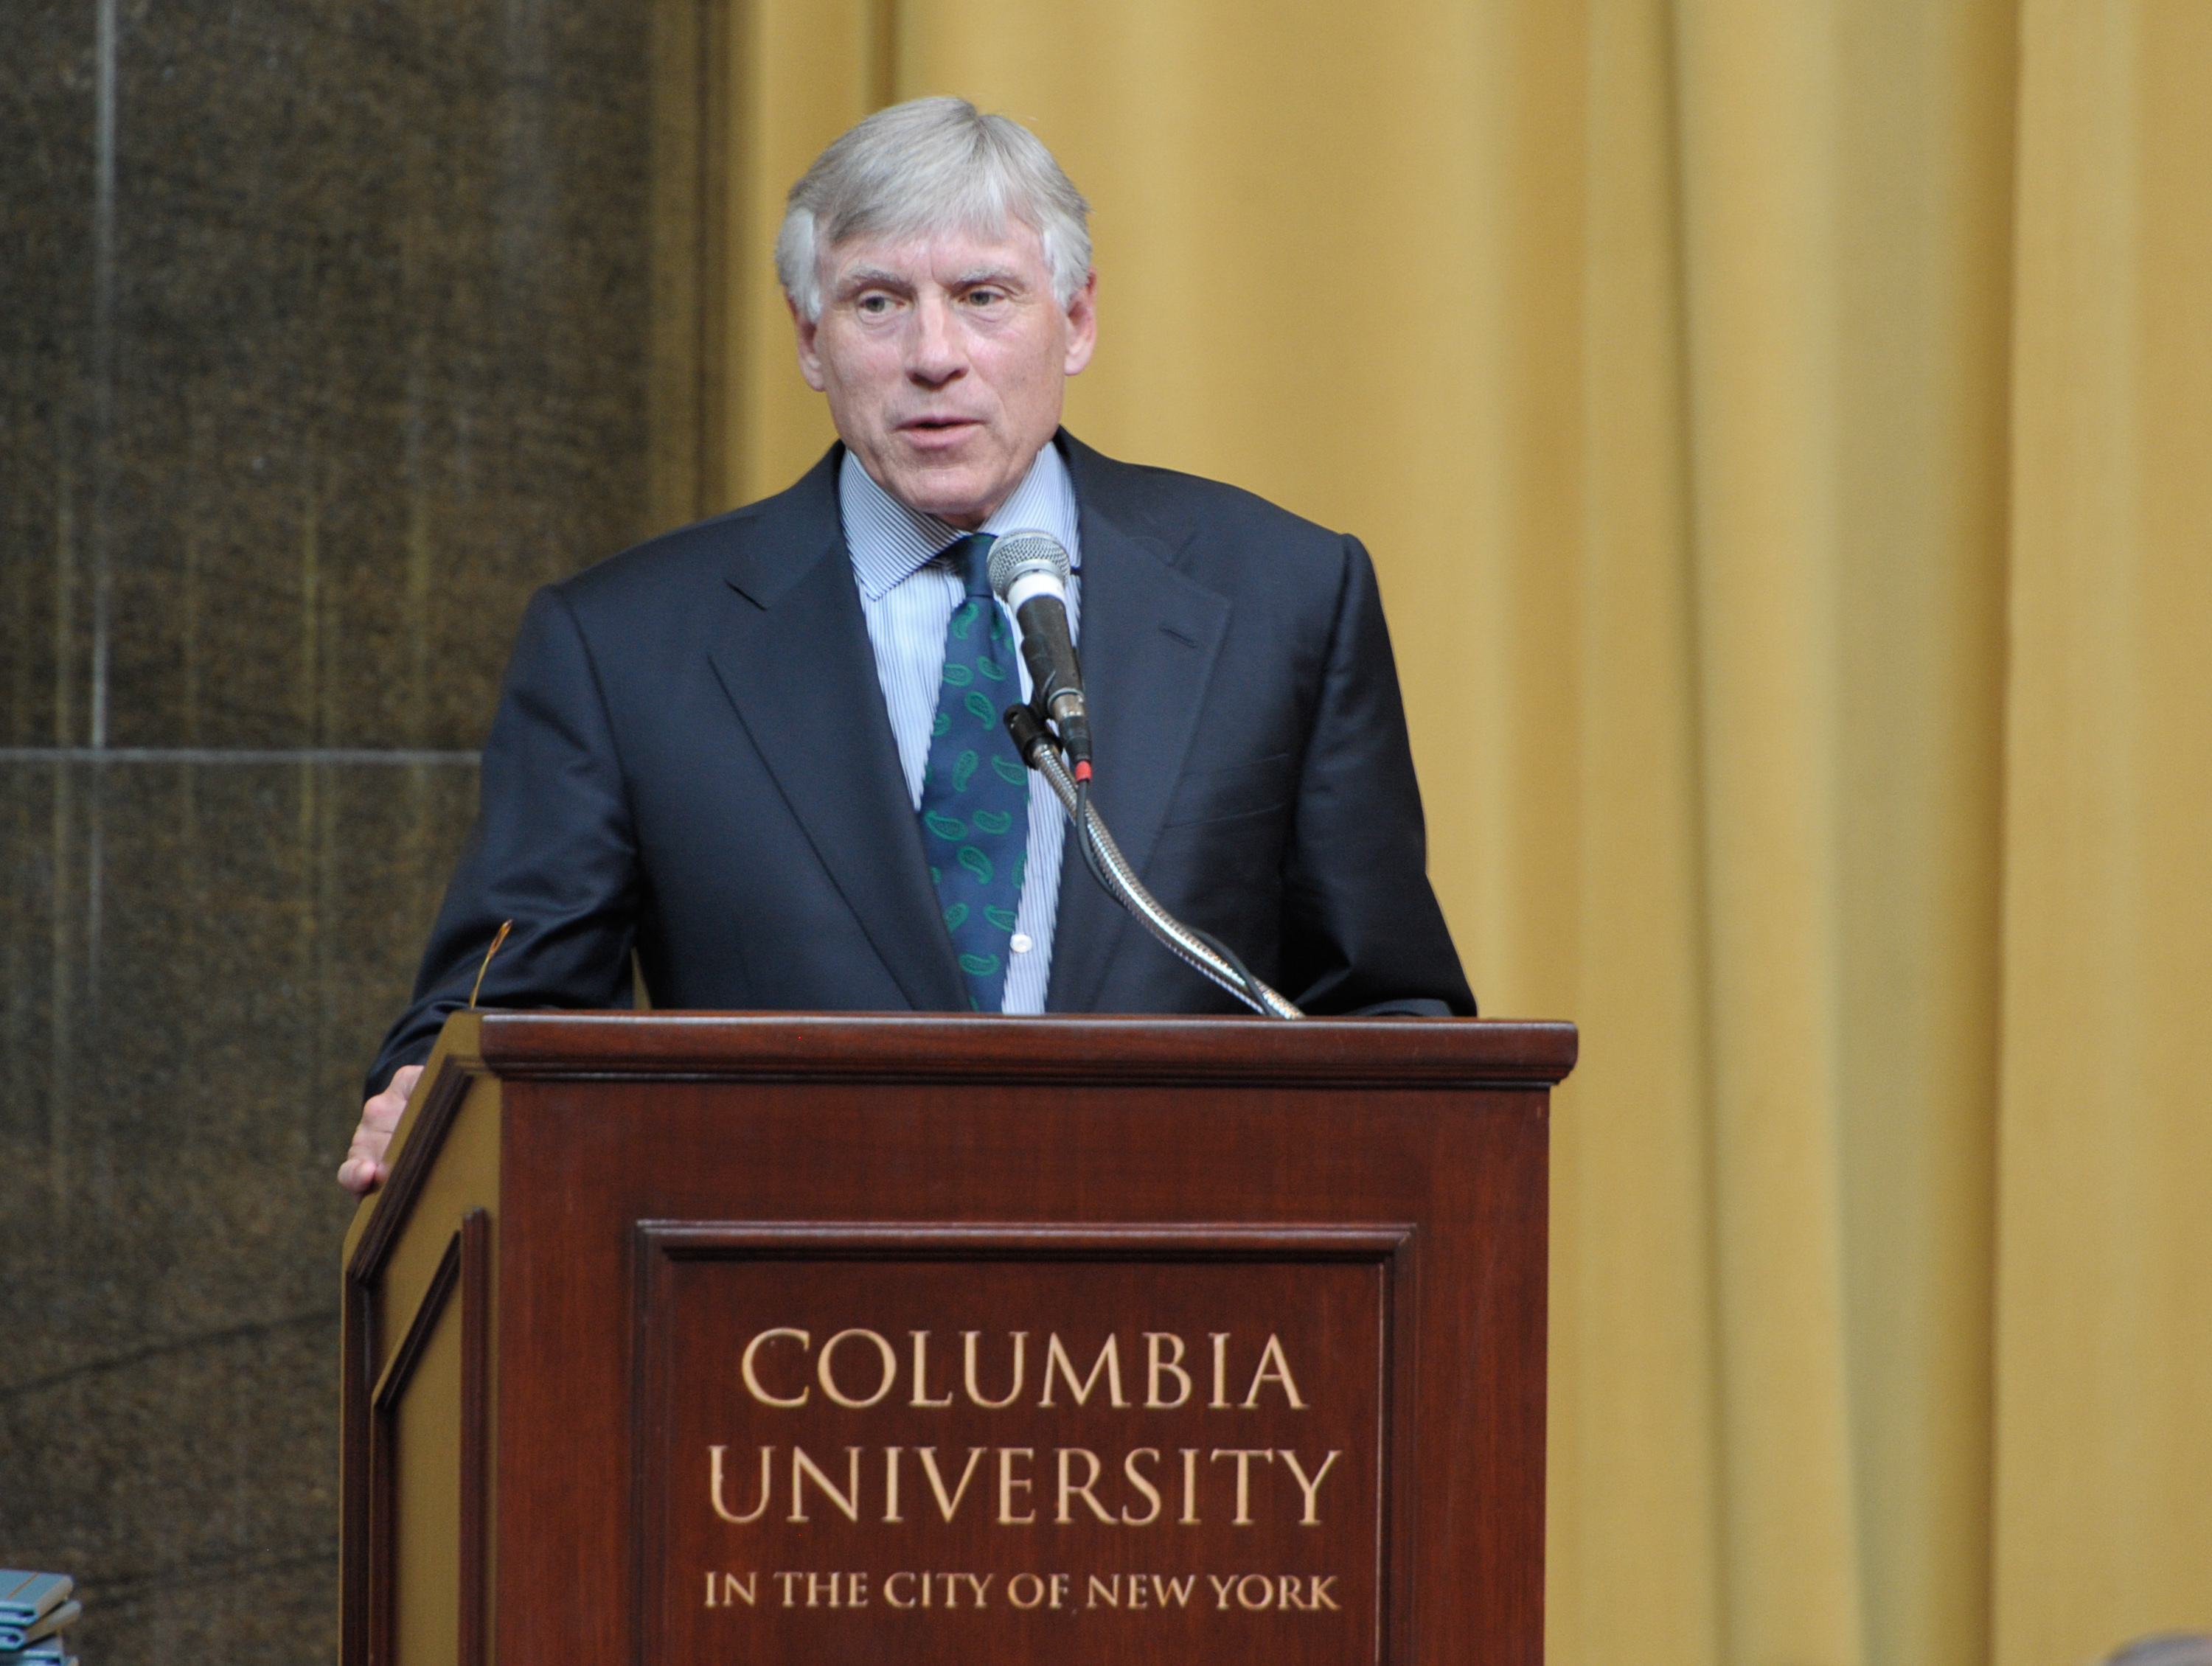 Lee C. Bollinger speaks  at  the 7th Annual Pulitzer Prizes in Journalism, Letters, Drama and Music Winners Luncheon in New York City on May 30, 2013.